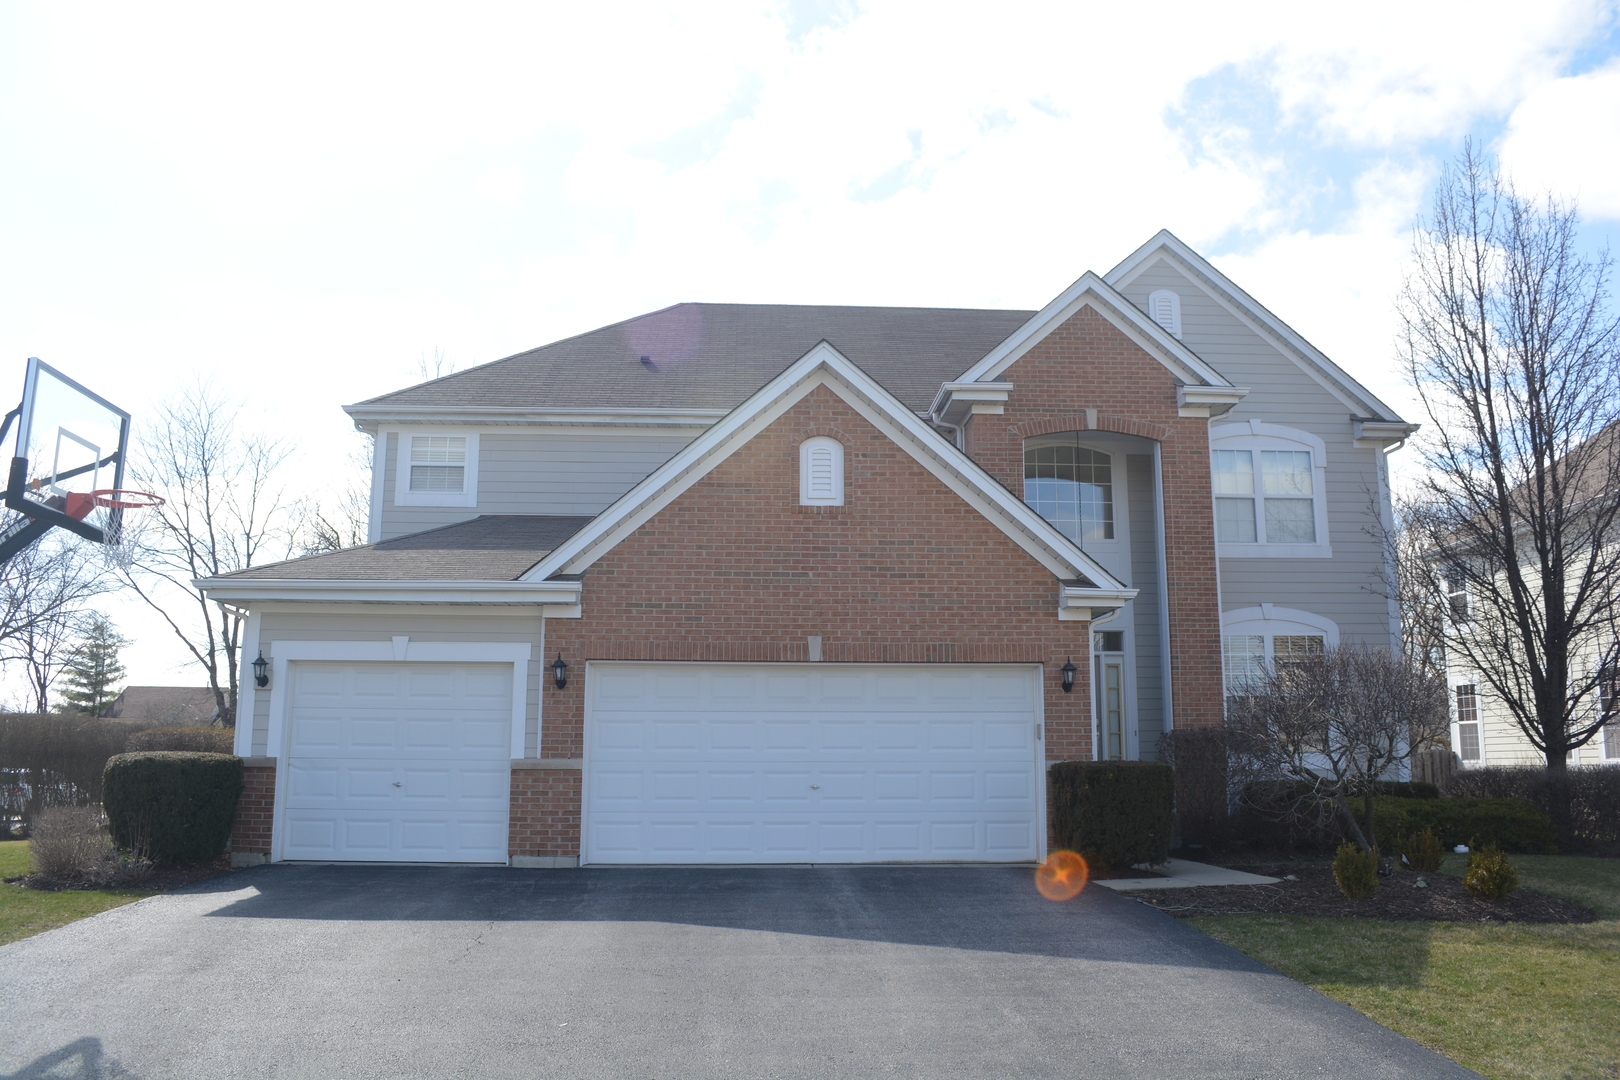 2840 Orchard Lane, Buffalo Grove in Lake County, IL 60089 Home for Sale